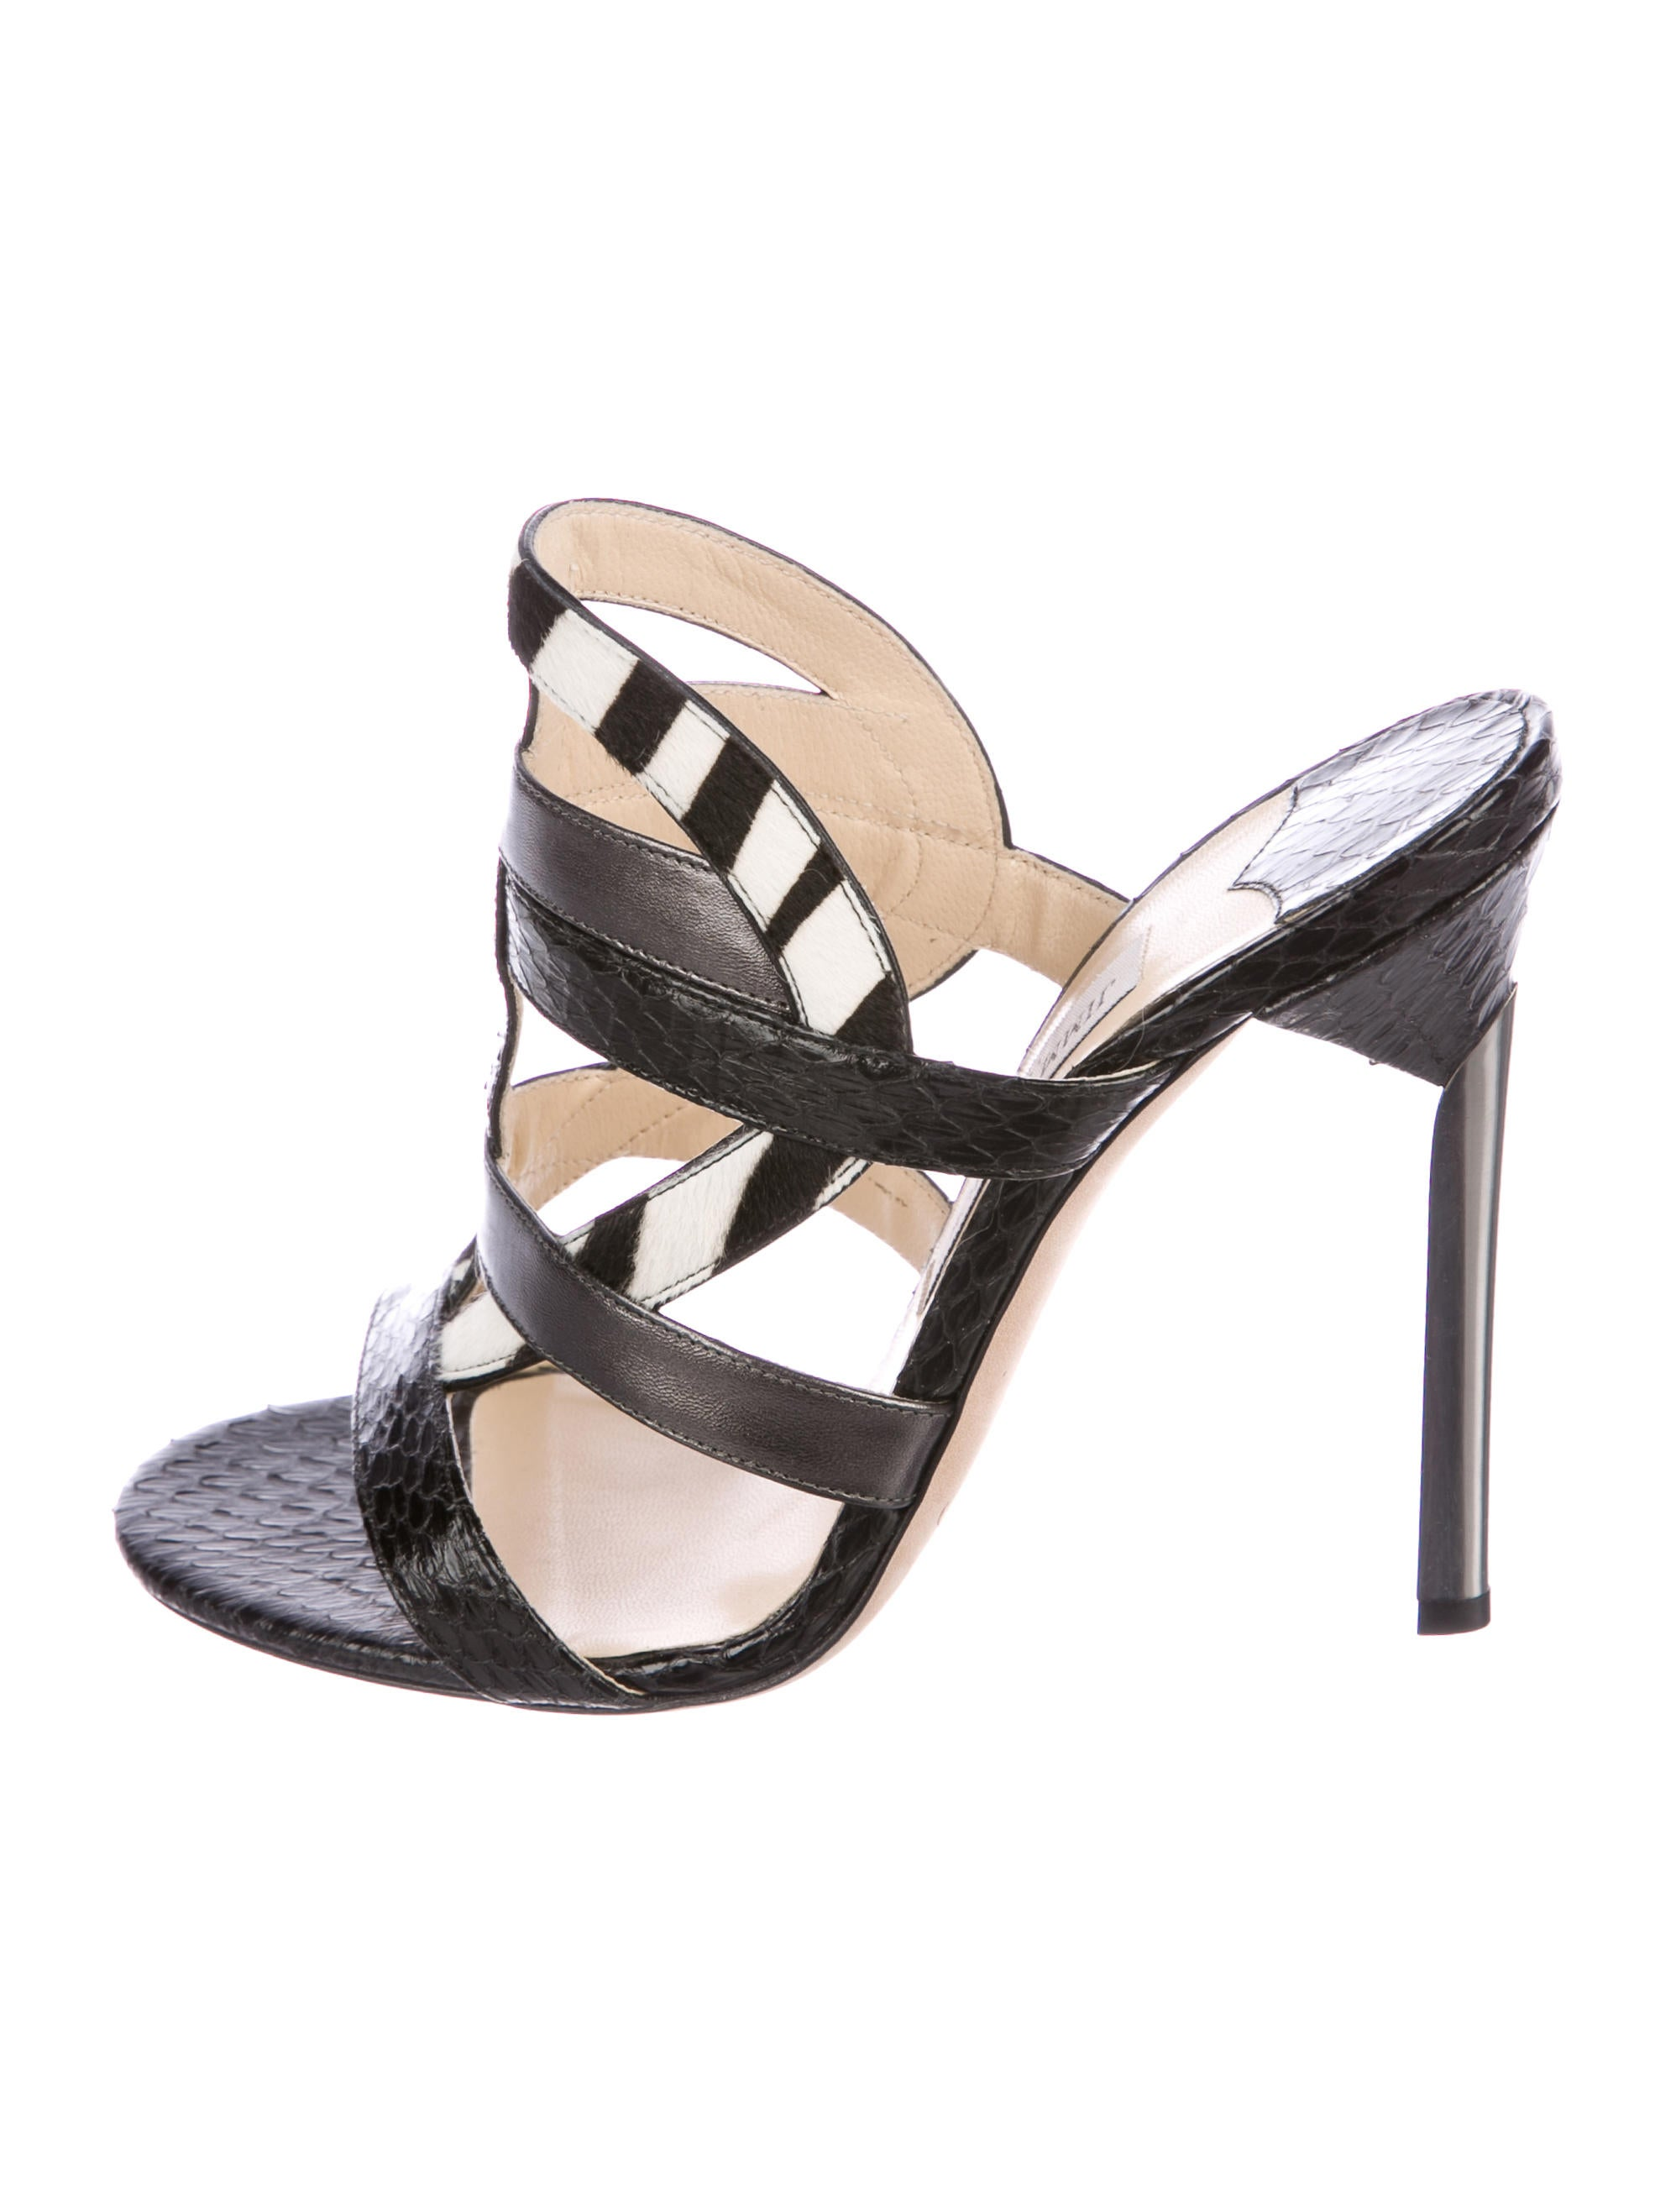 low price fee shipping for sale Jimmy Choo Vanisa Snakeskin Sandals w/ Tags where to buy free shipping low shipping f435A3ArW3